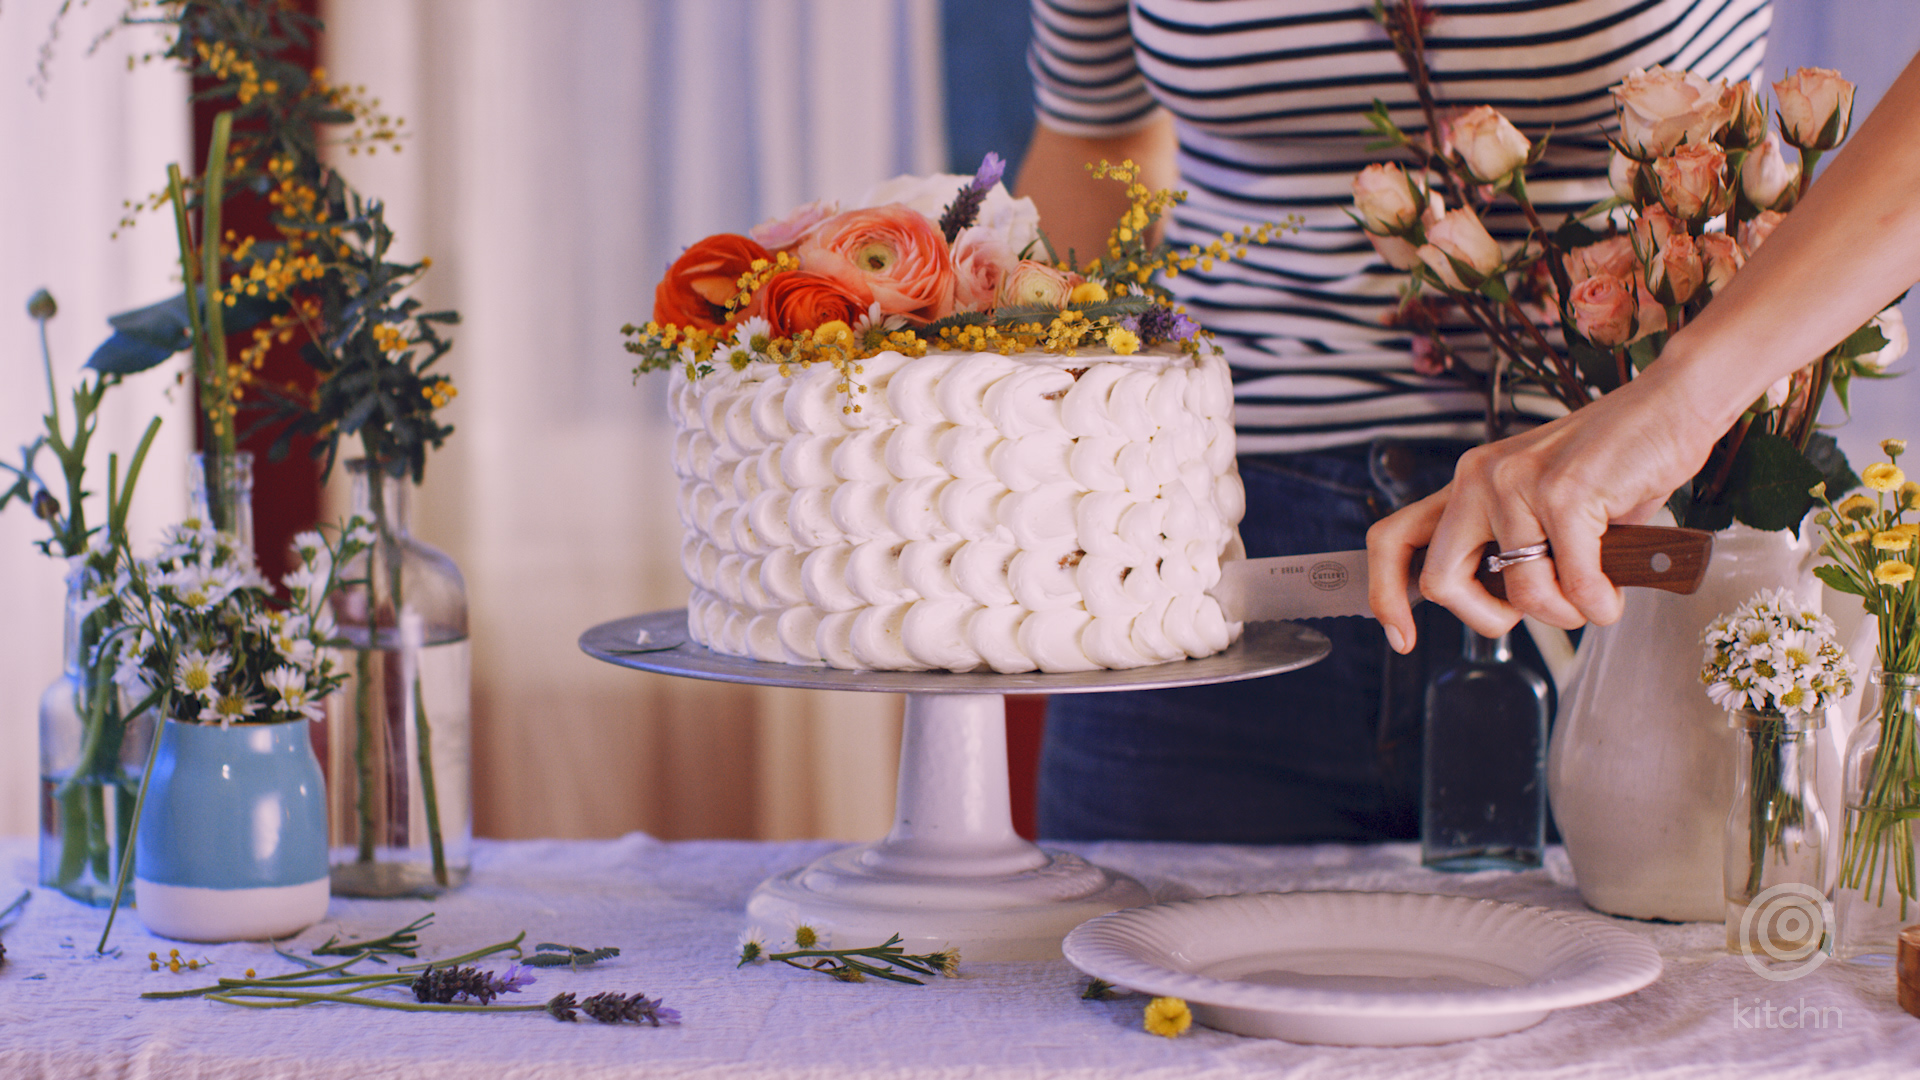 What To Know About Putting Flowers On Your Cakes Kitchn